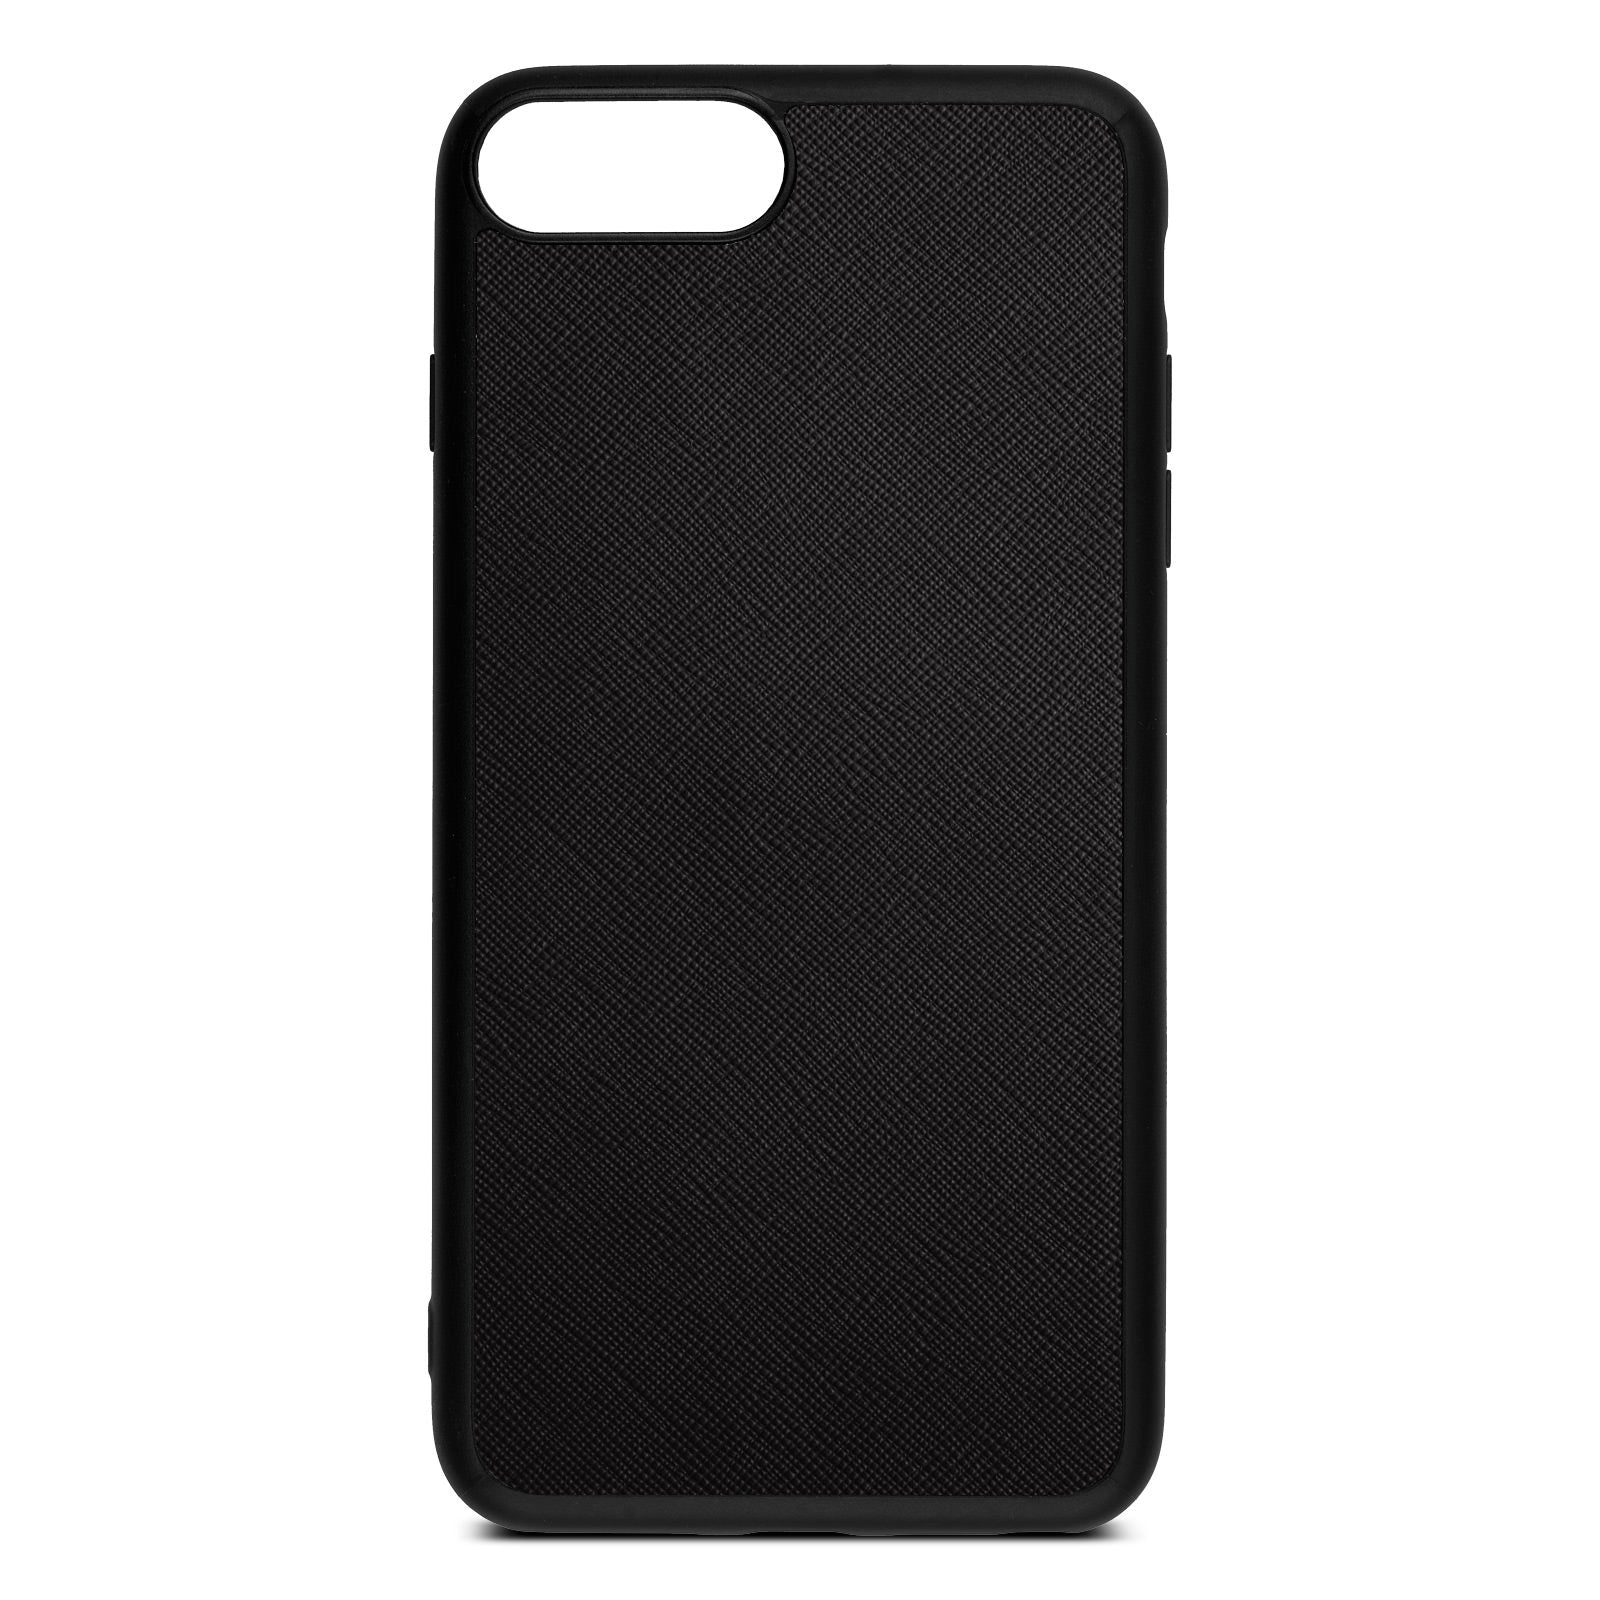 Blank iPhone 8 Plus Drop Shadow Black Leather Case